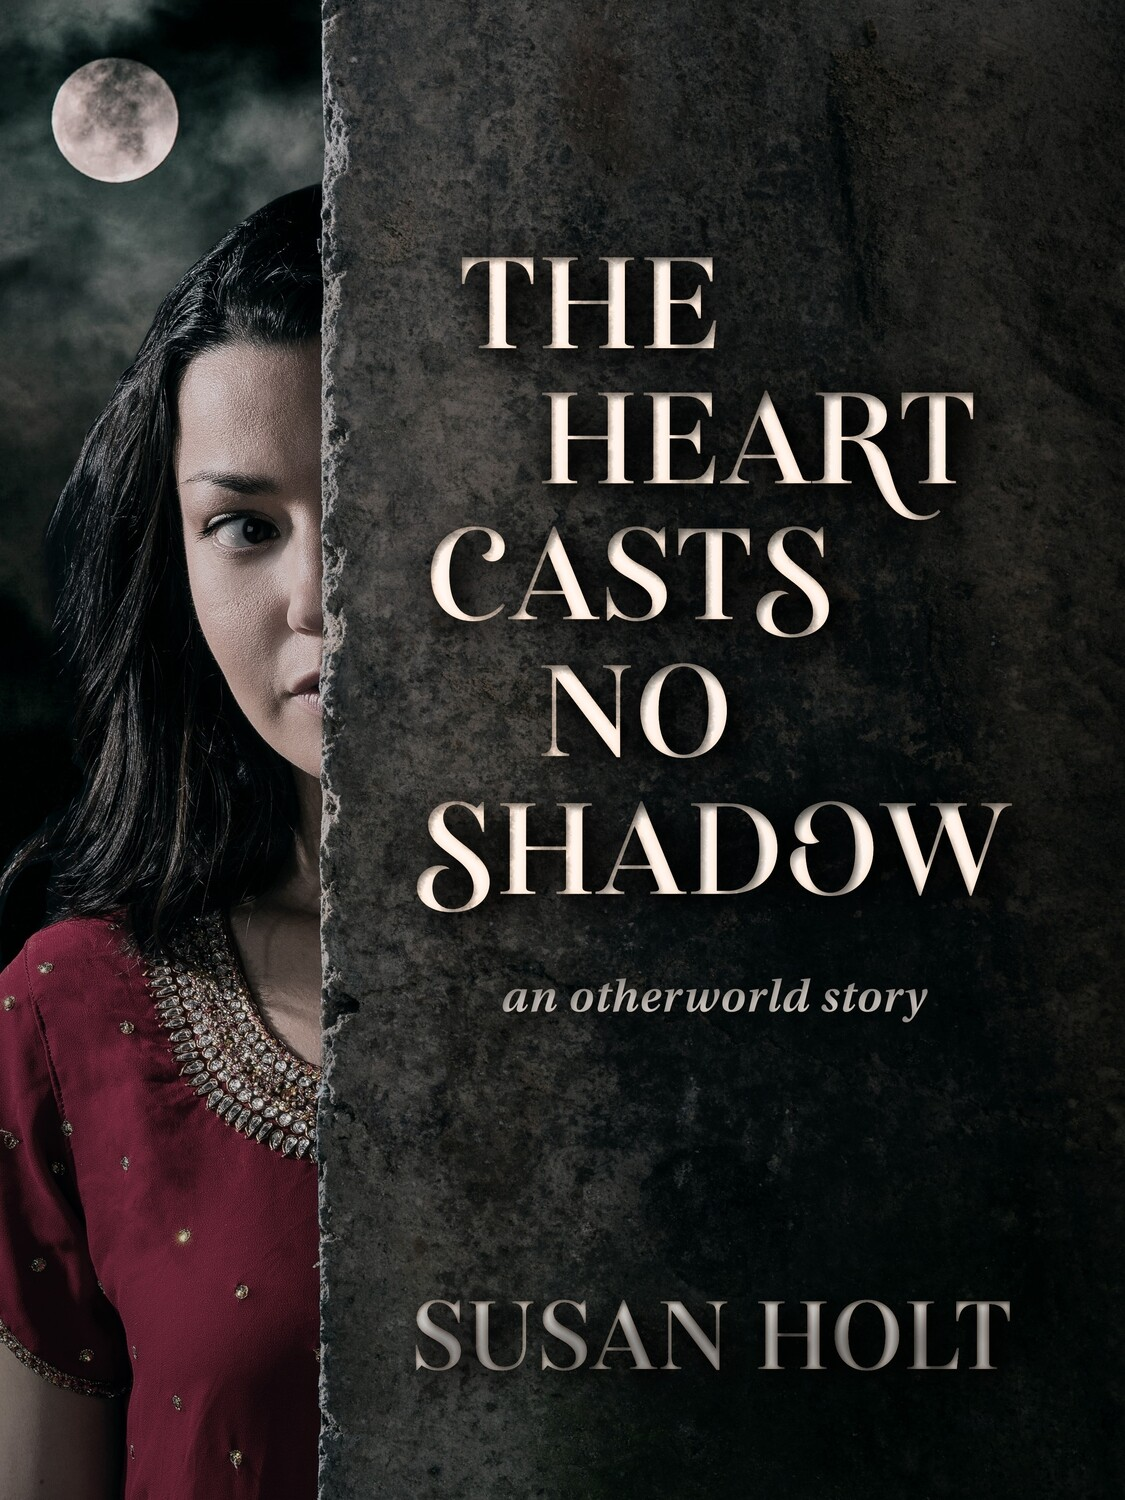 The Heart Casts No Shadow - Paperback